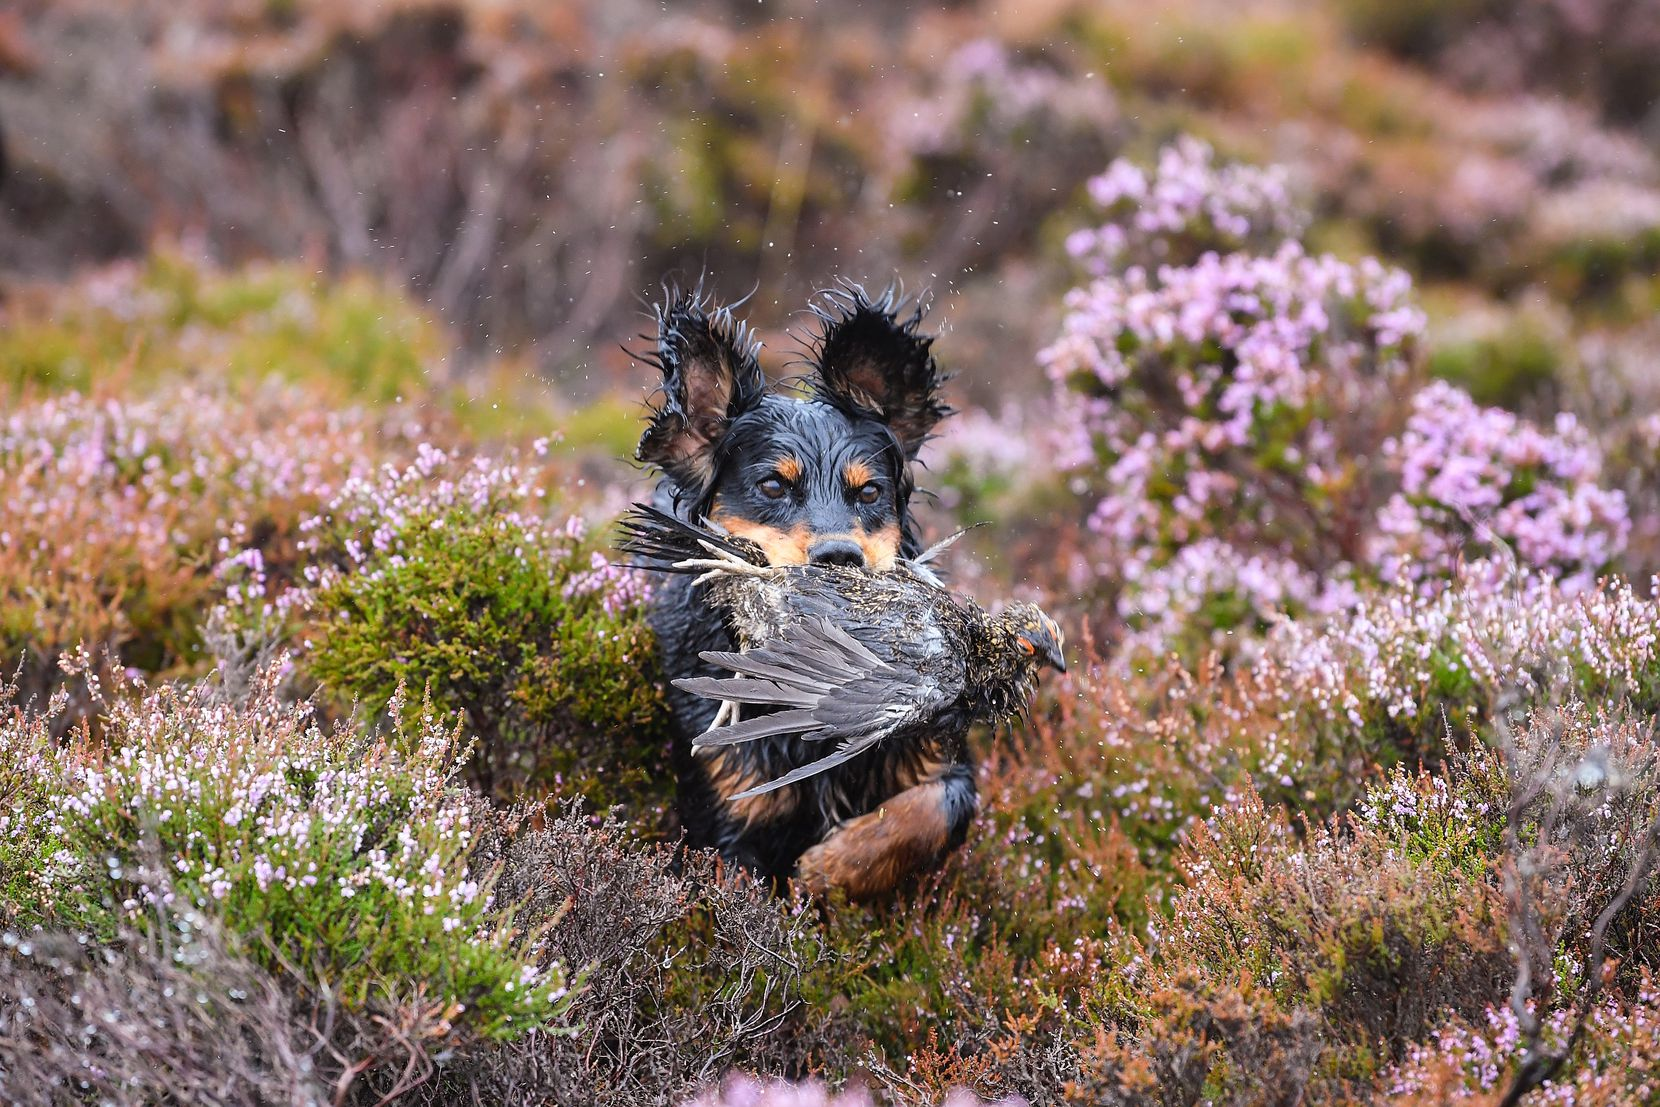 Brig the dog retrieves a grouse shot on first day of the grouse shooting season on Forneth Moor on Monday, Aug. 13, in Dunkeld, Scotland. Gamekeepers are expecting a poor grouse shooting season this year, due to the heavy snowfall in March followed by a warm dry summer that has affected the number of birds breeding successfully.